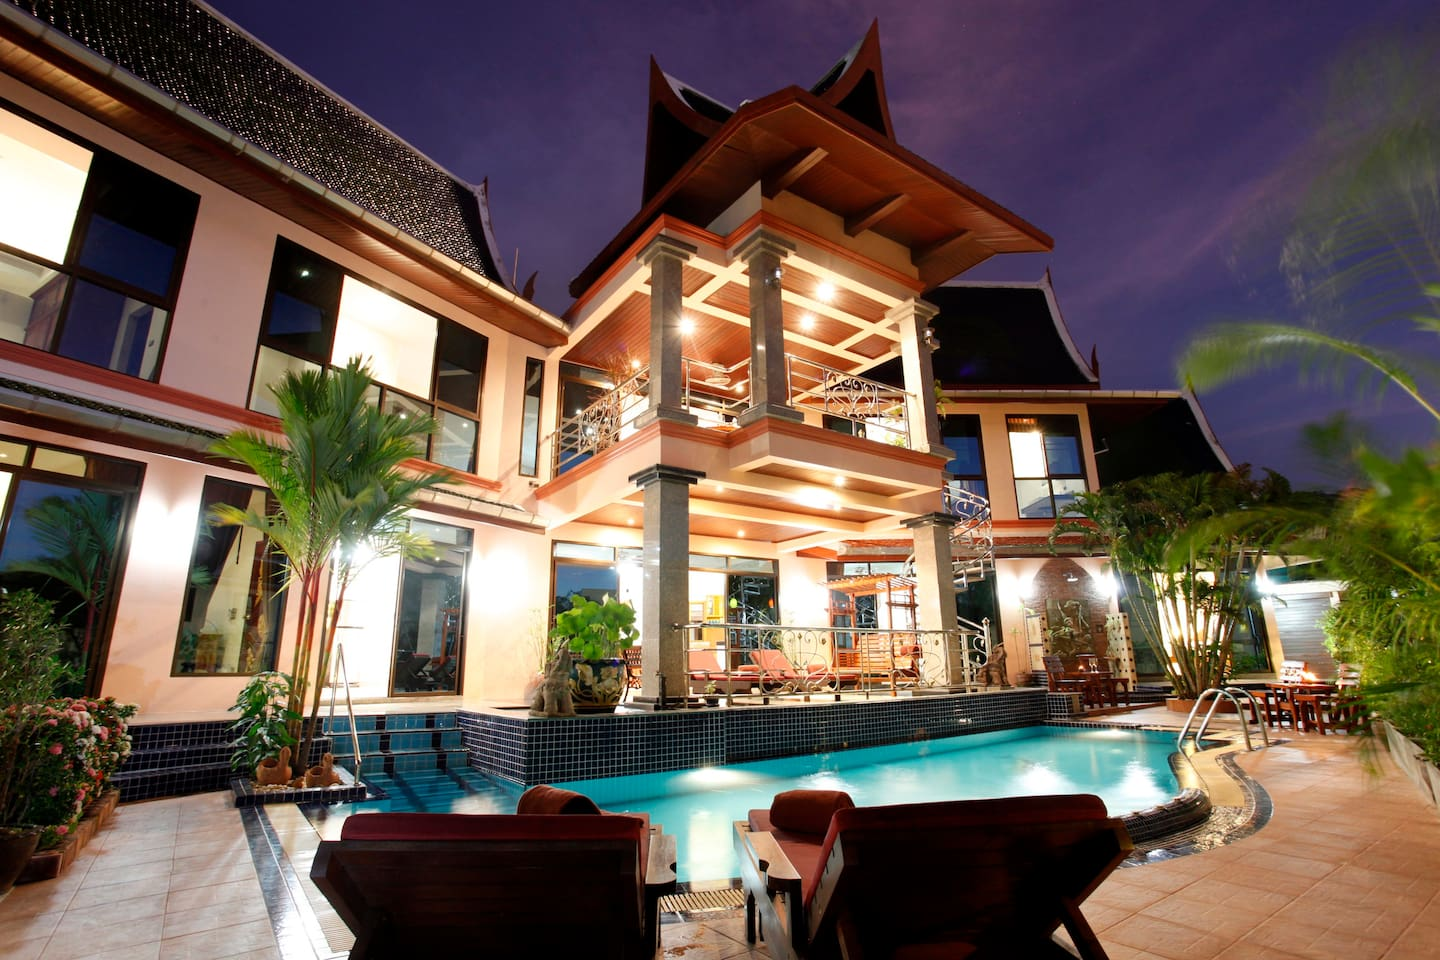 Evening Picture of Beautiful Thai Style Villa!